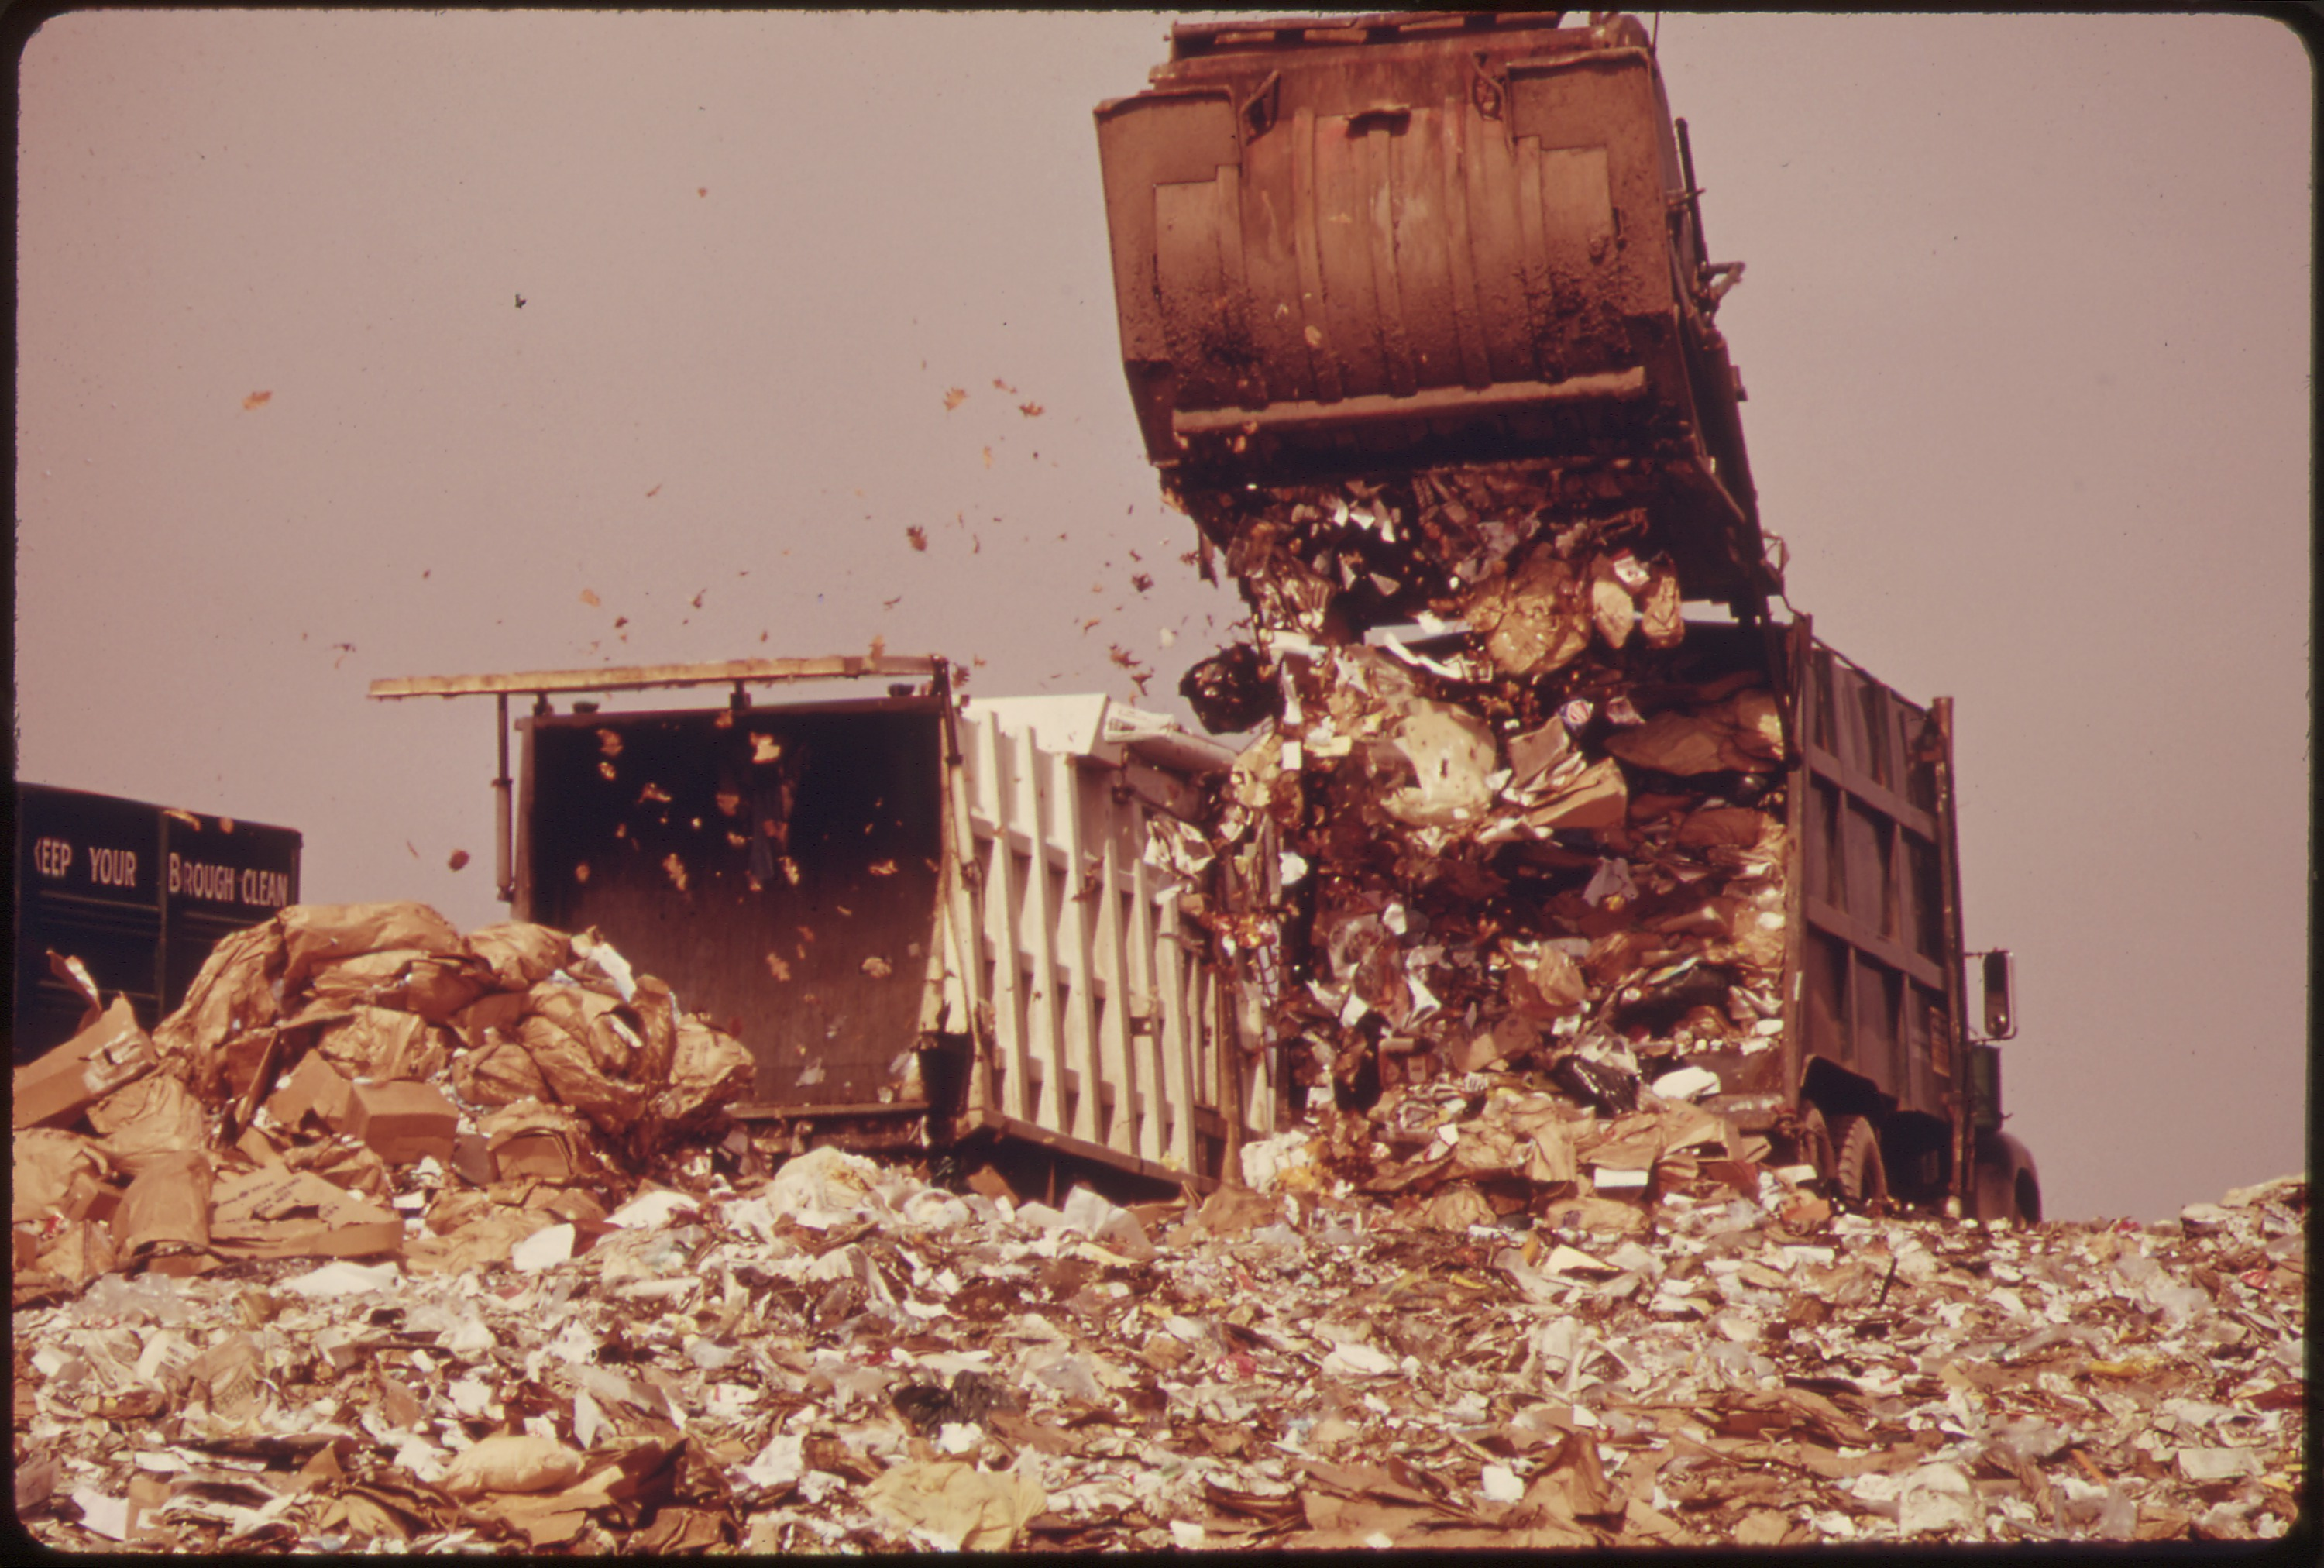 Truck dumping garbage in the Hackensack Meadows dump.